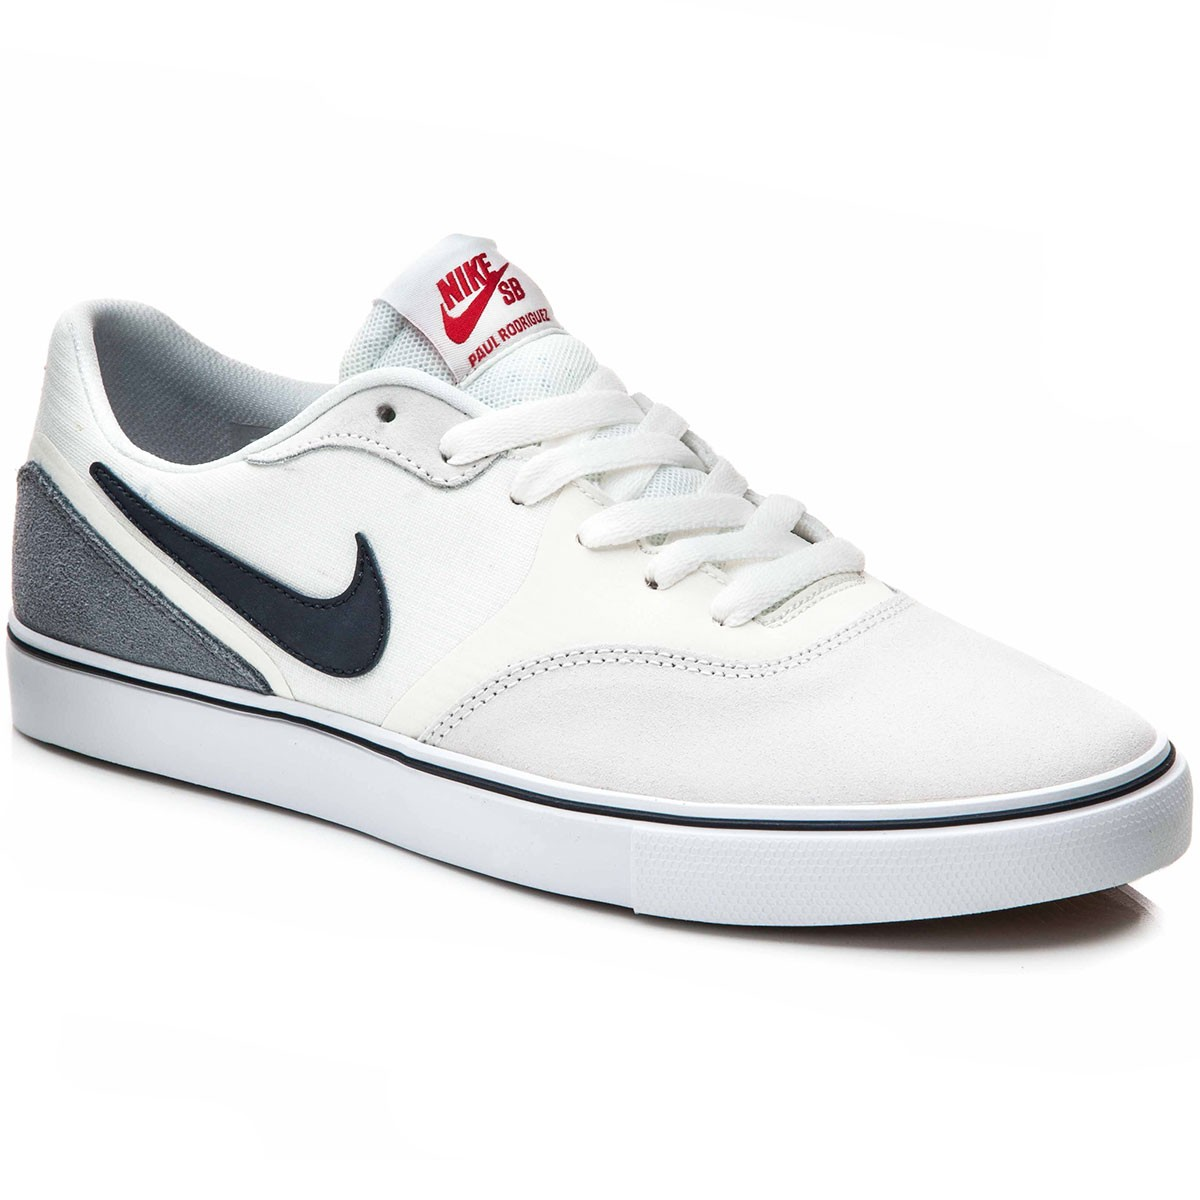 Nike Paul Rodriguez 9 VR Shoes - White/Gum/Red/Dark Obsidian - 10.0